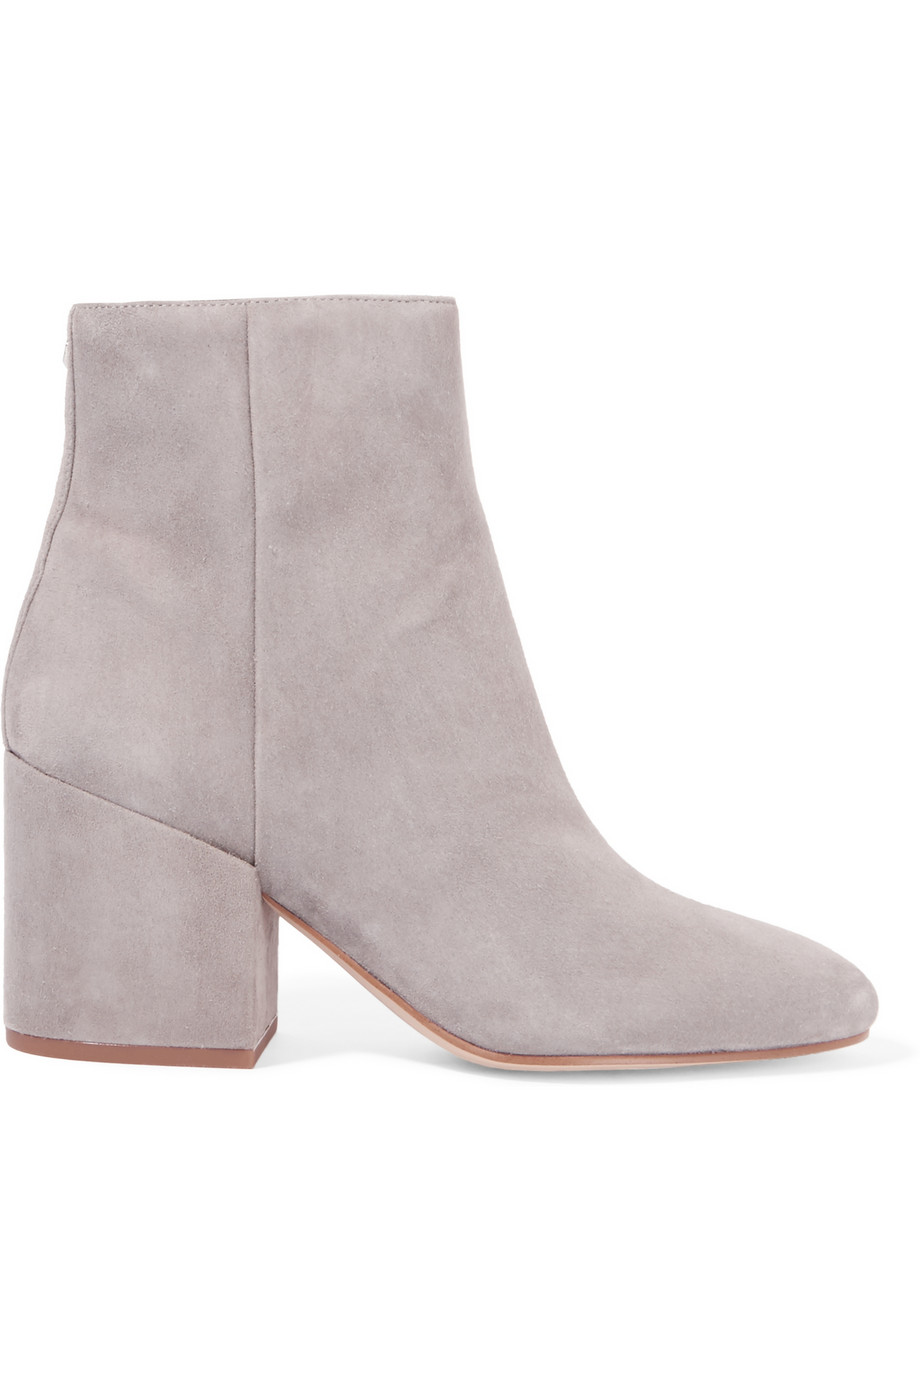 grey-suede-ankle-boots